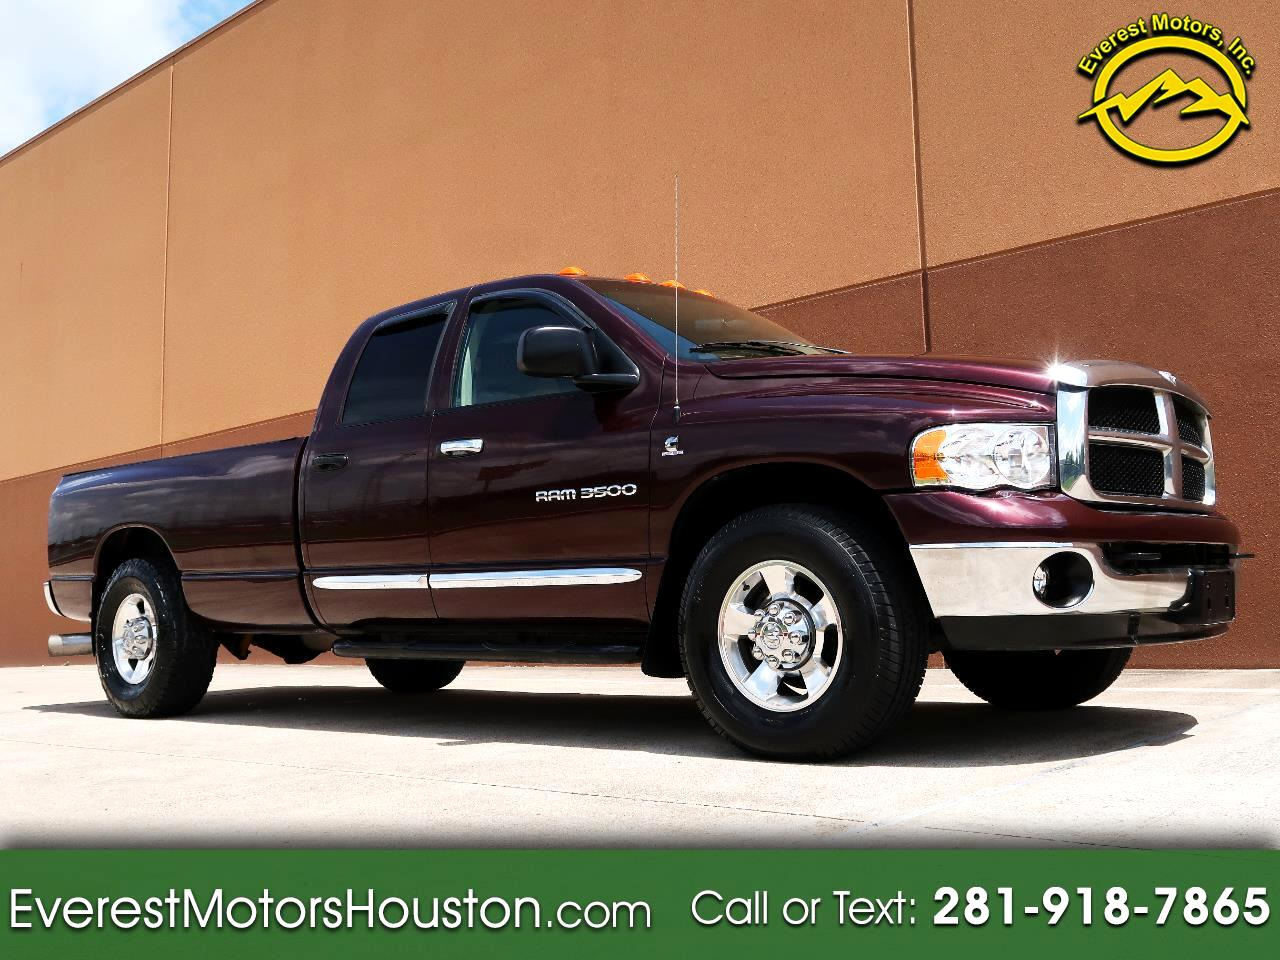 2005 Dodge Ram 3500 SLT QUAD CAB LONG BED 2WD 5.9L DIESEL